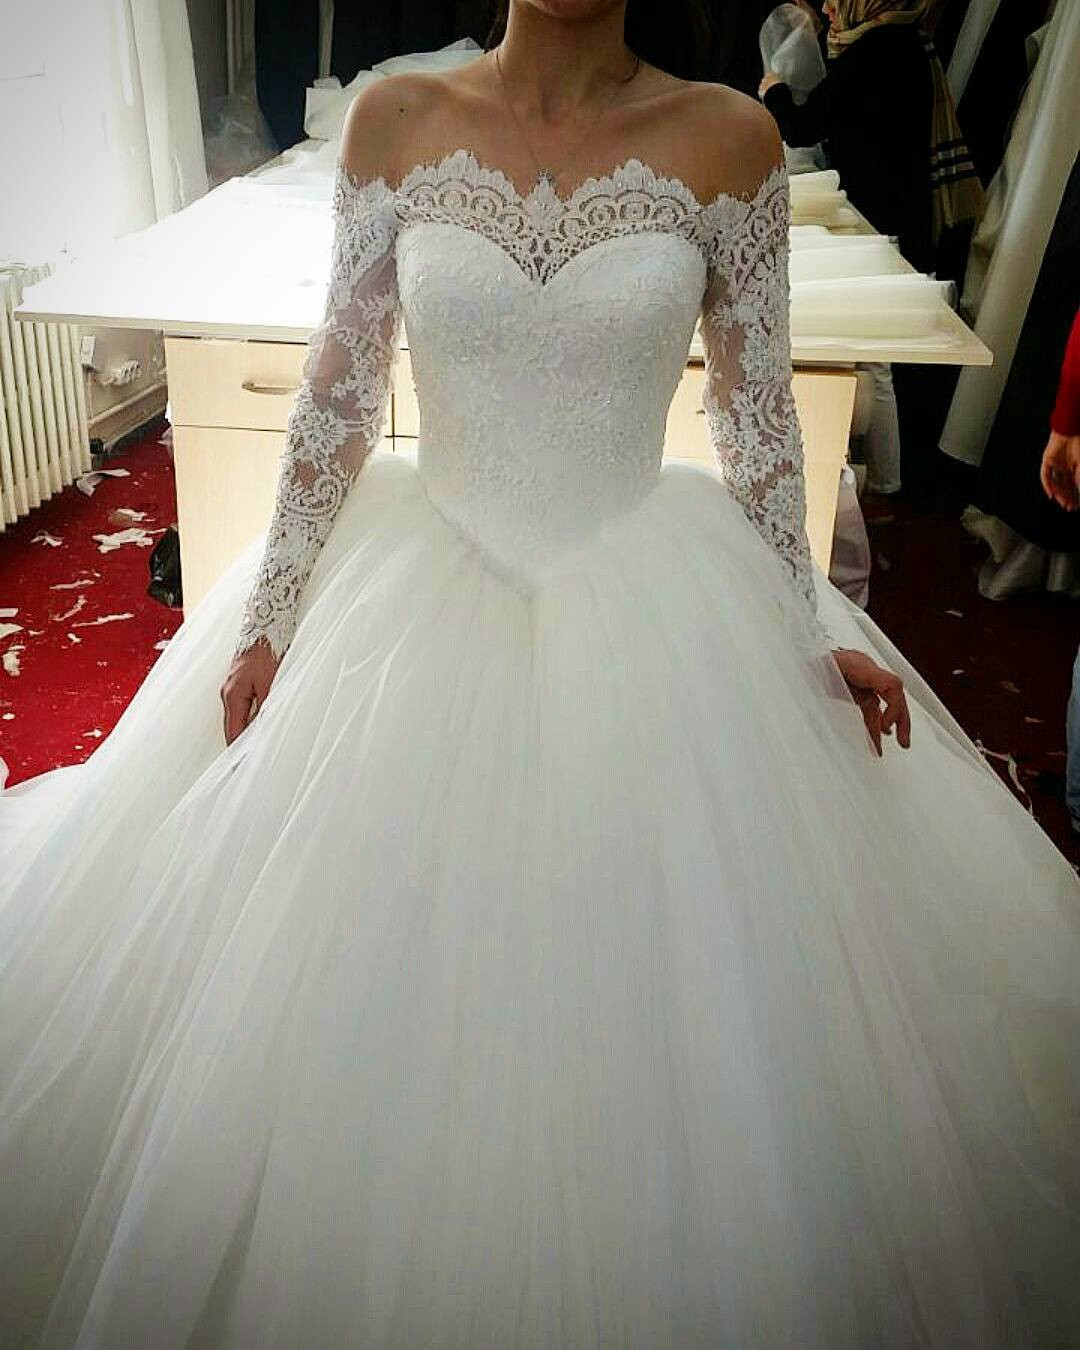 Lace Long Sleeves Tulle Ball Gowns Wedding Dresses Off The Shoulder Bridal Gown Prom Dress